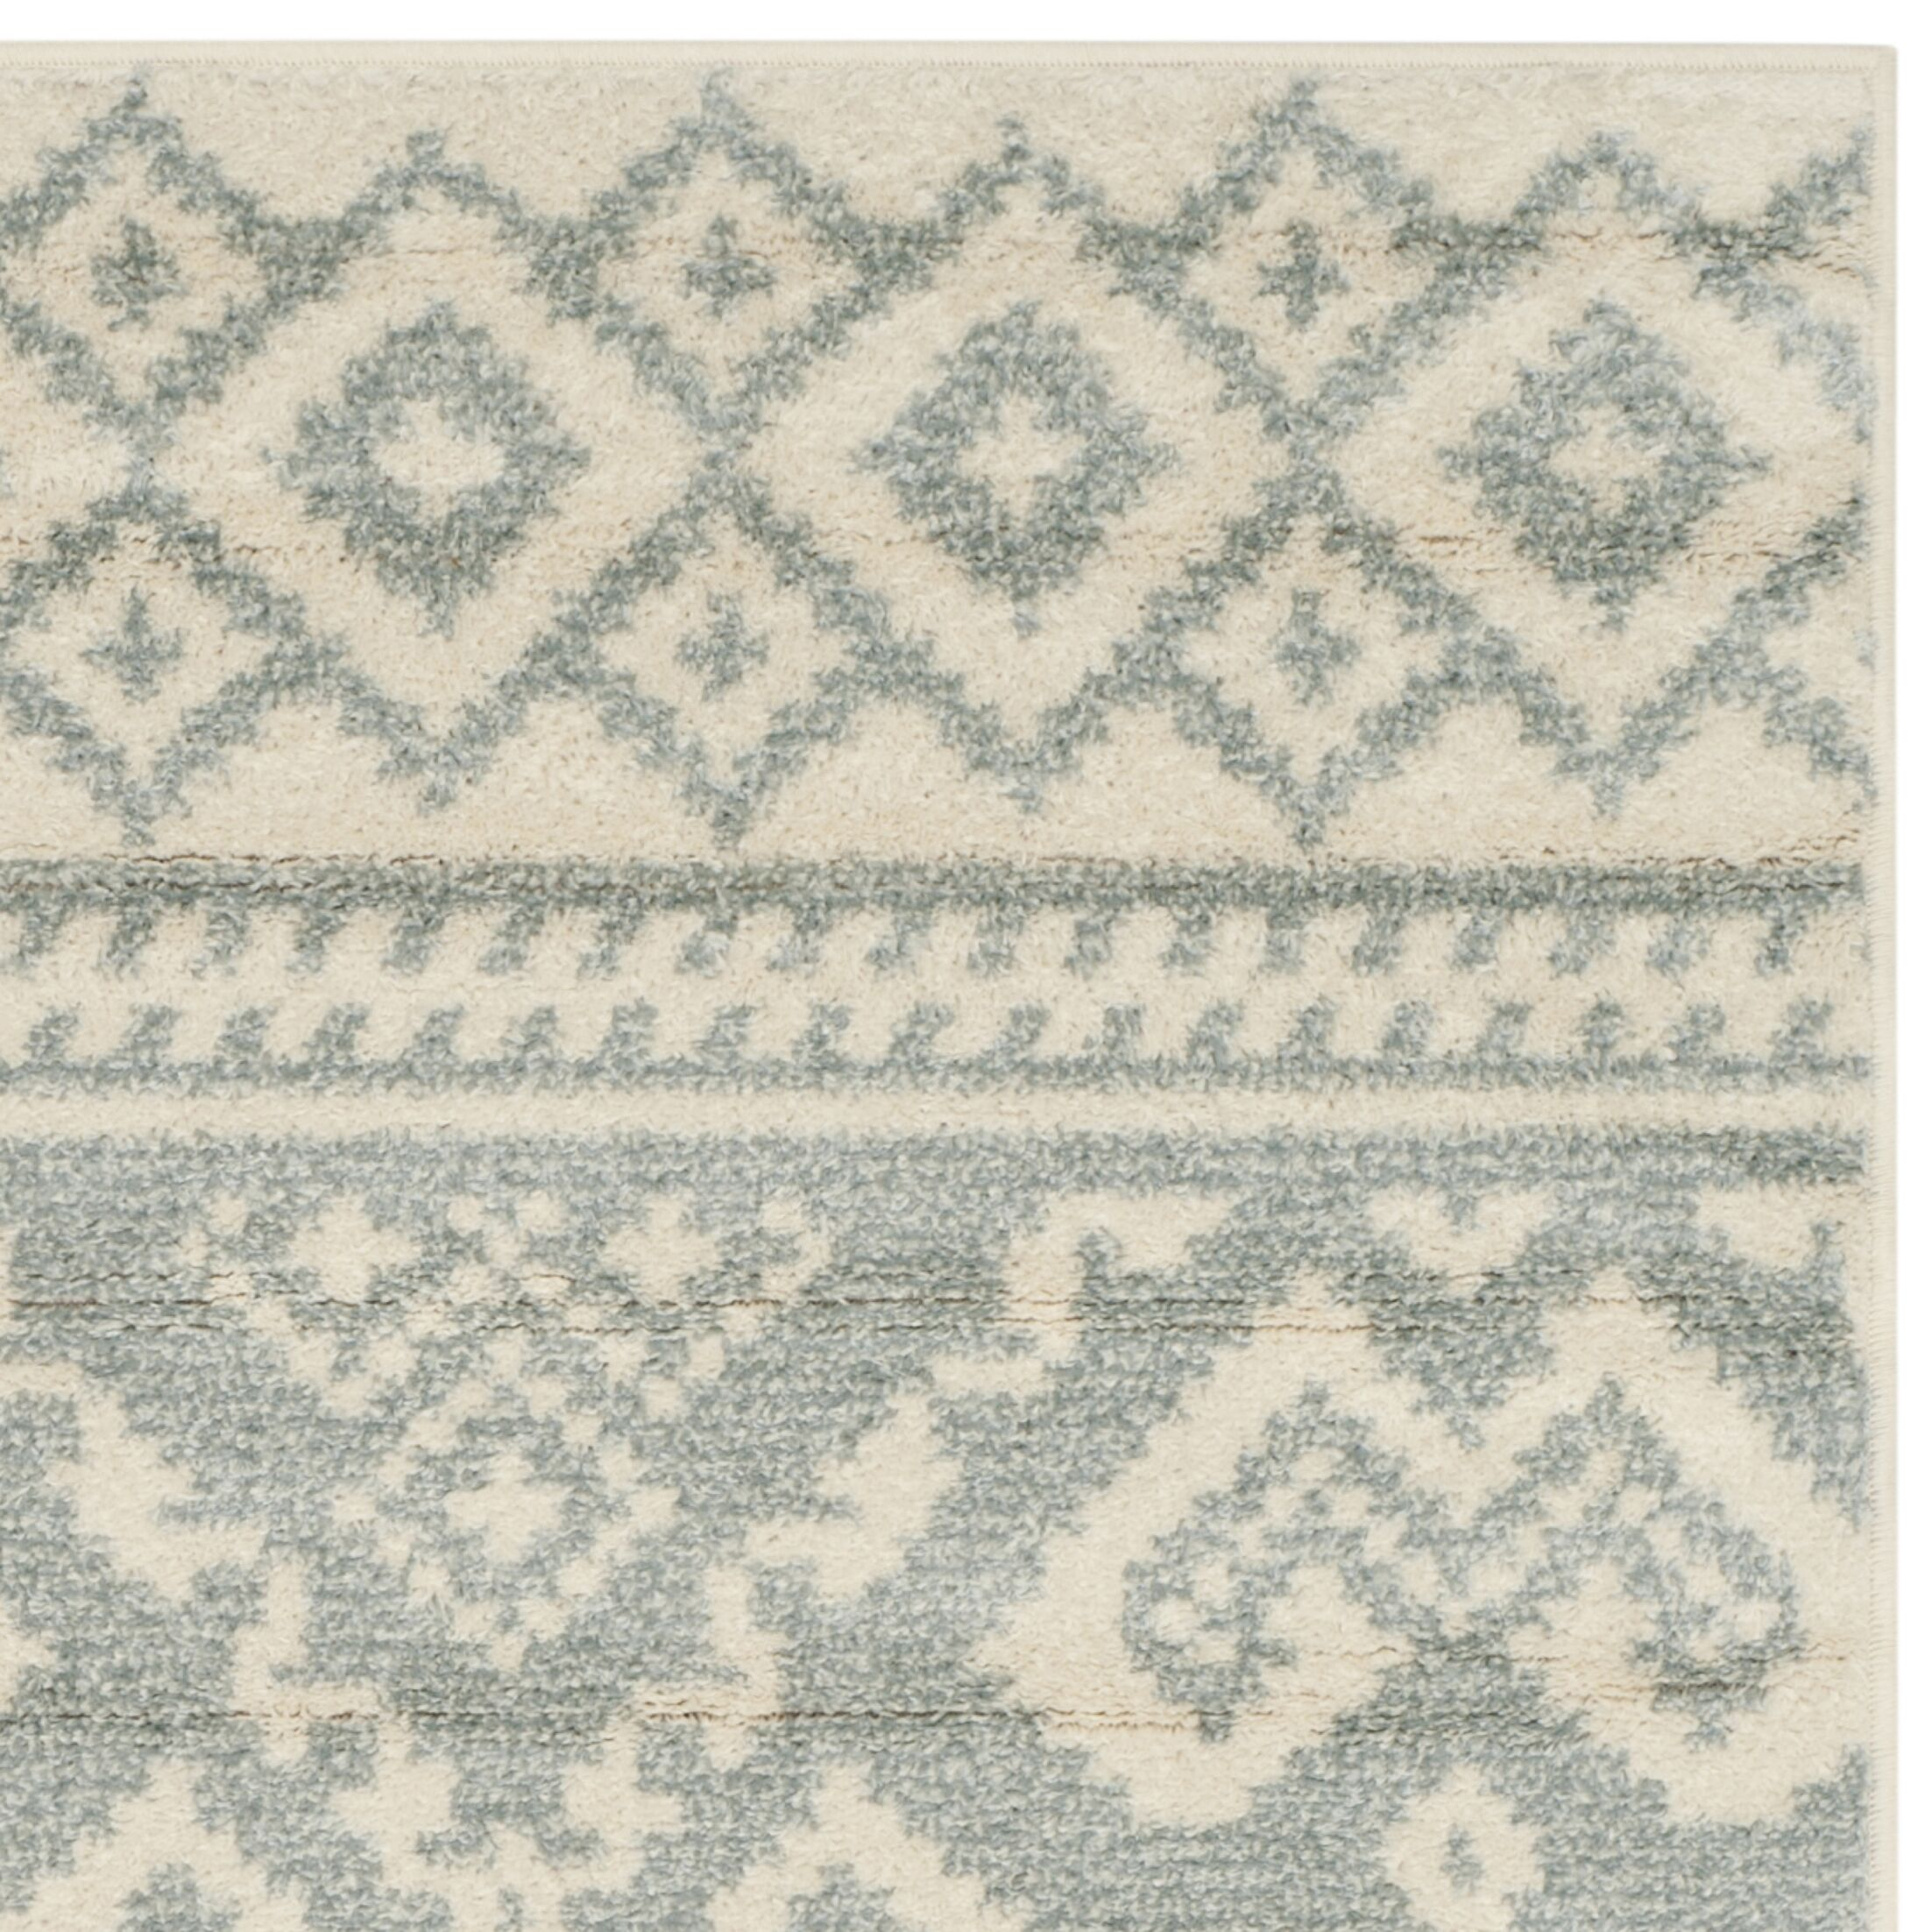 Cavileer Ivory/Slate Area Rug Rug Size: Rectangle 5'1